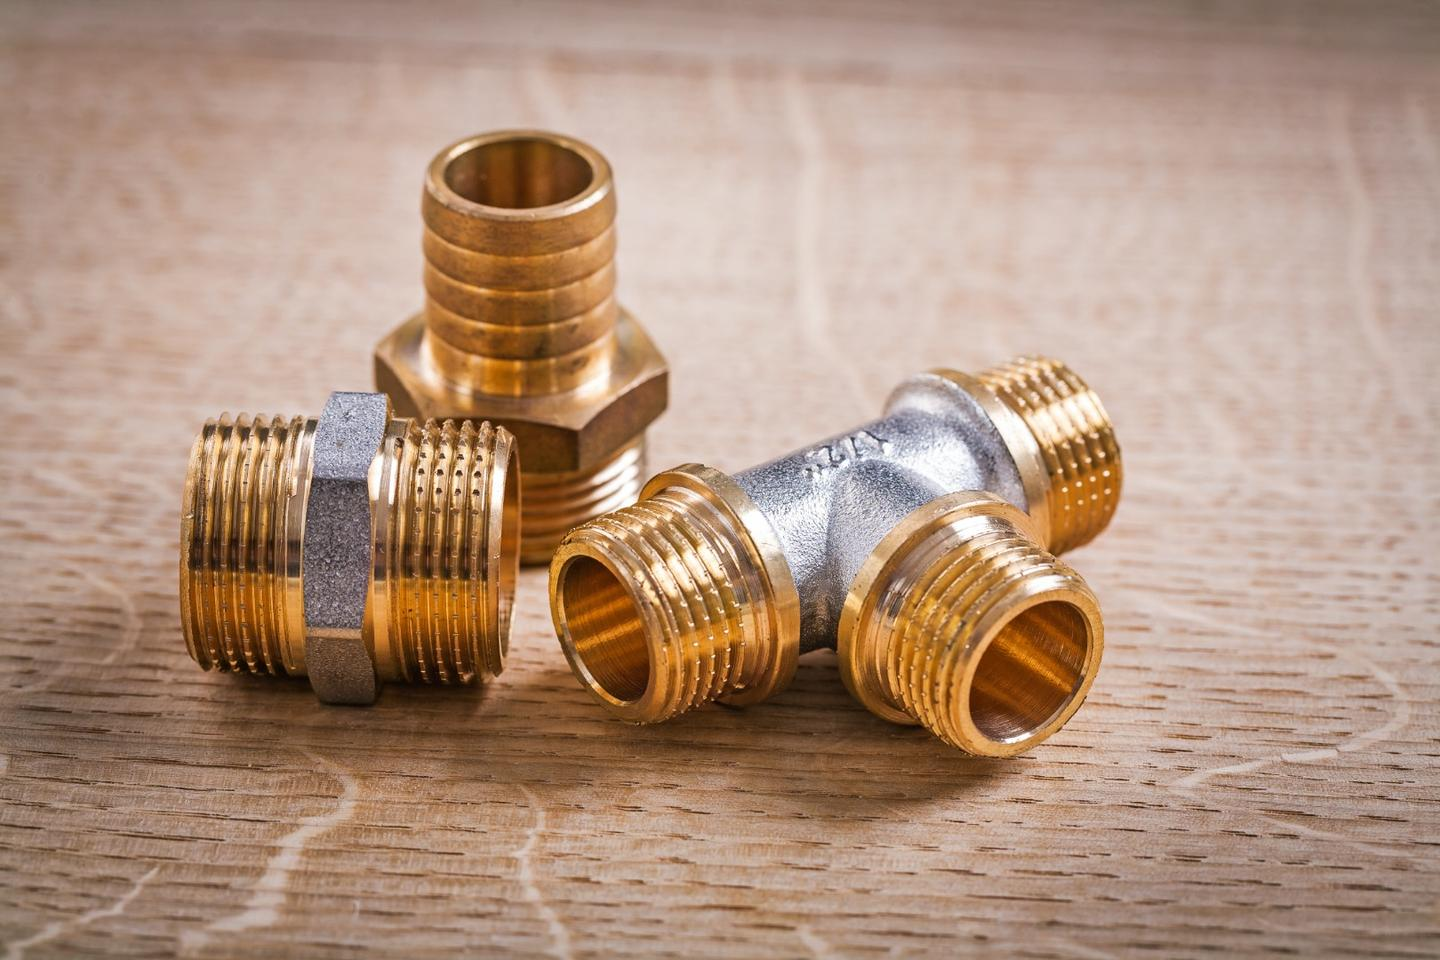 Plumbing fixtures made from conventional brass, such as these, can leach lead into drinking water